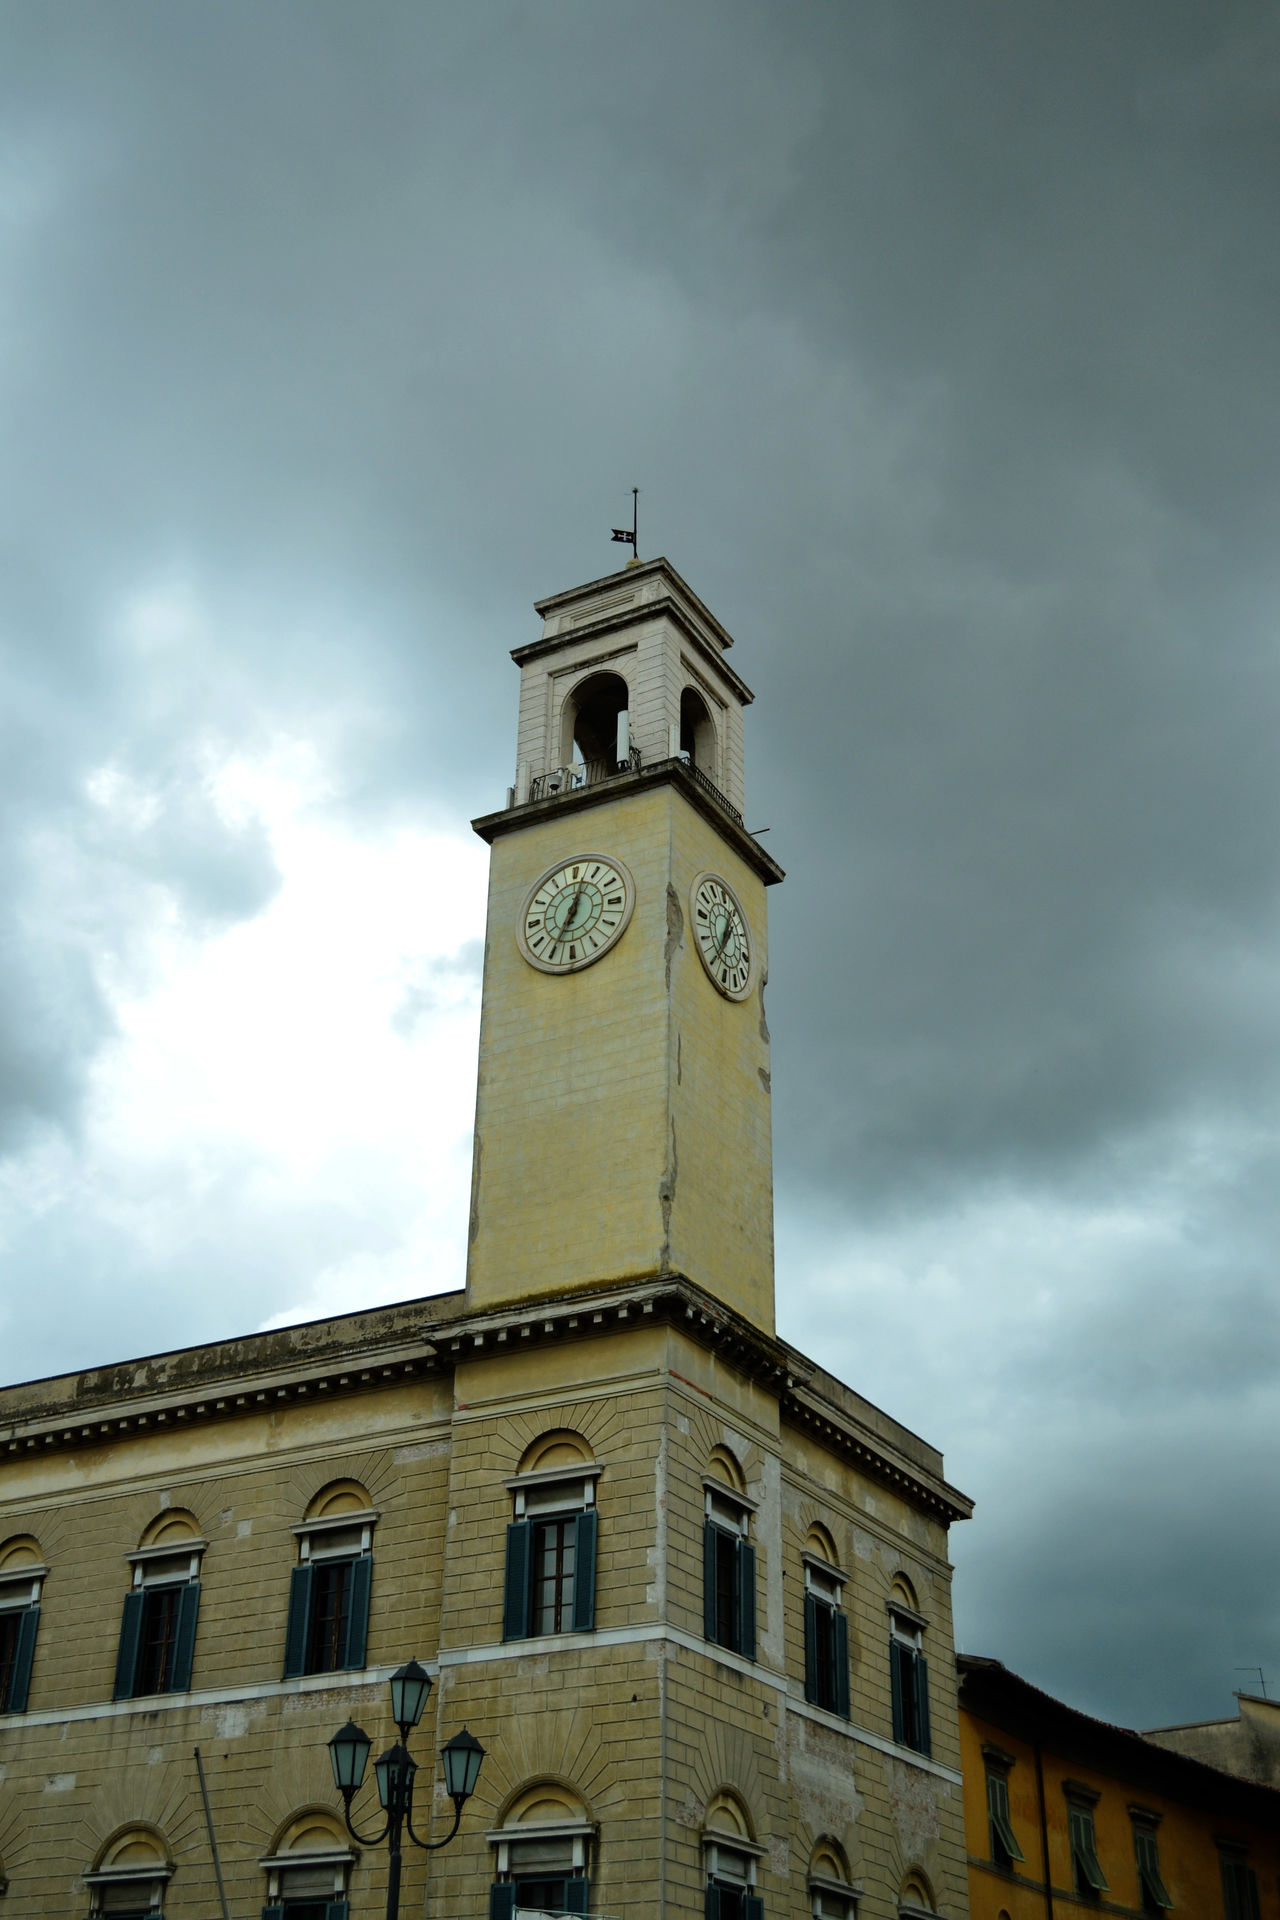 Architecture Clock Tower Clouds And Sky Culture Everyday Life Exploring Tuscany Historic Low Angle View Outdoors Storm Tower Tuscany Greetings From Italy